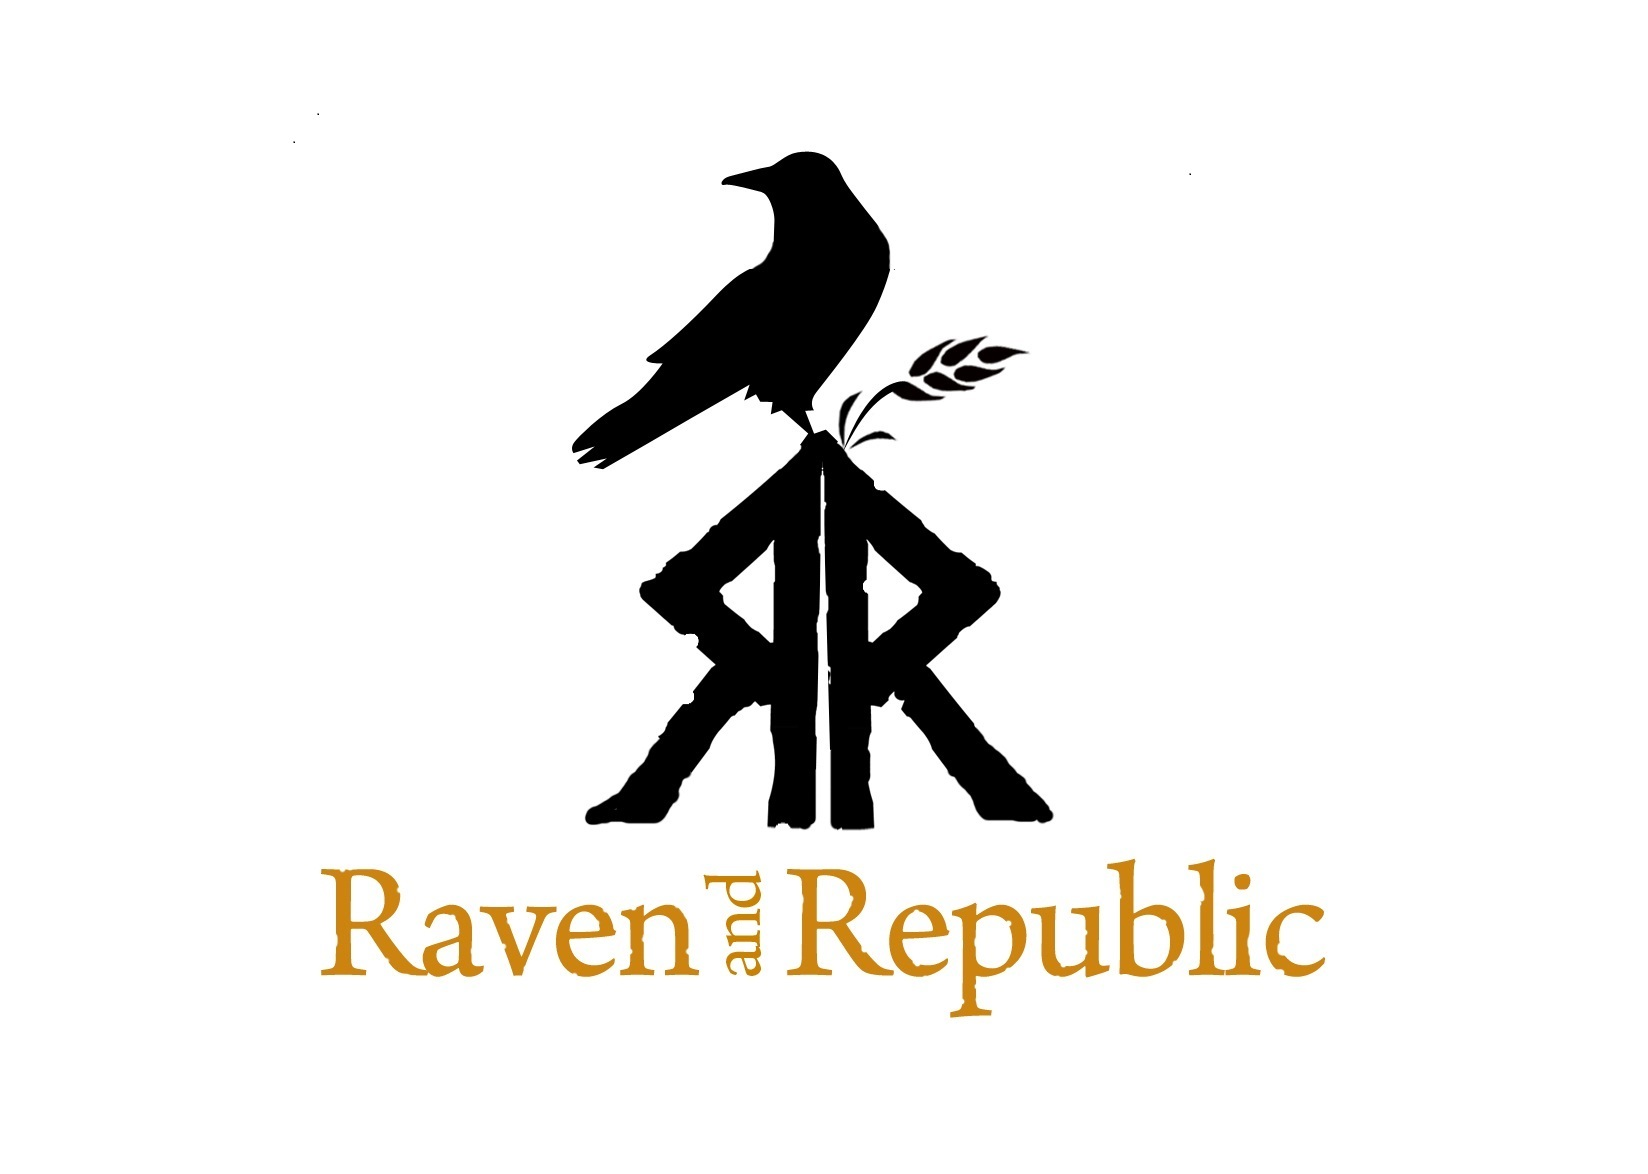 Raven and Republic